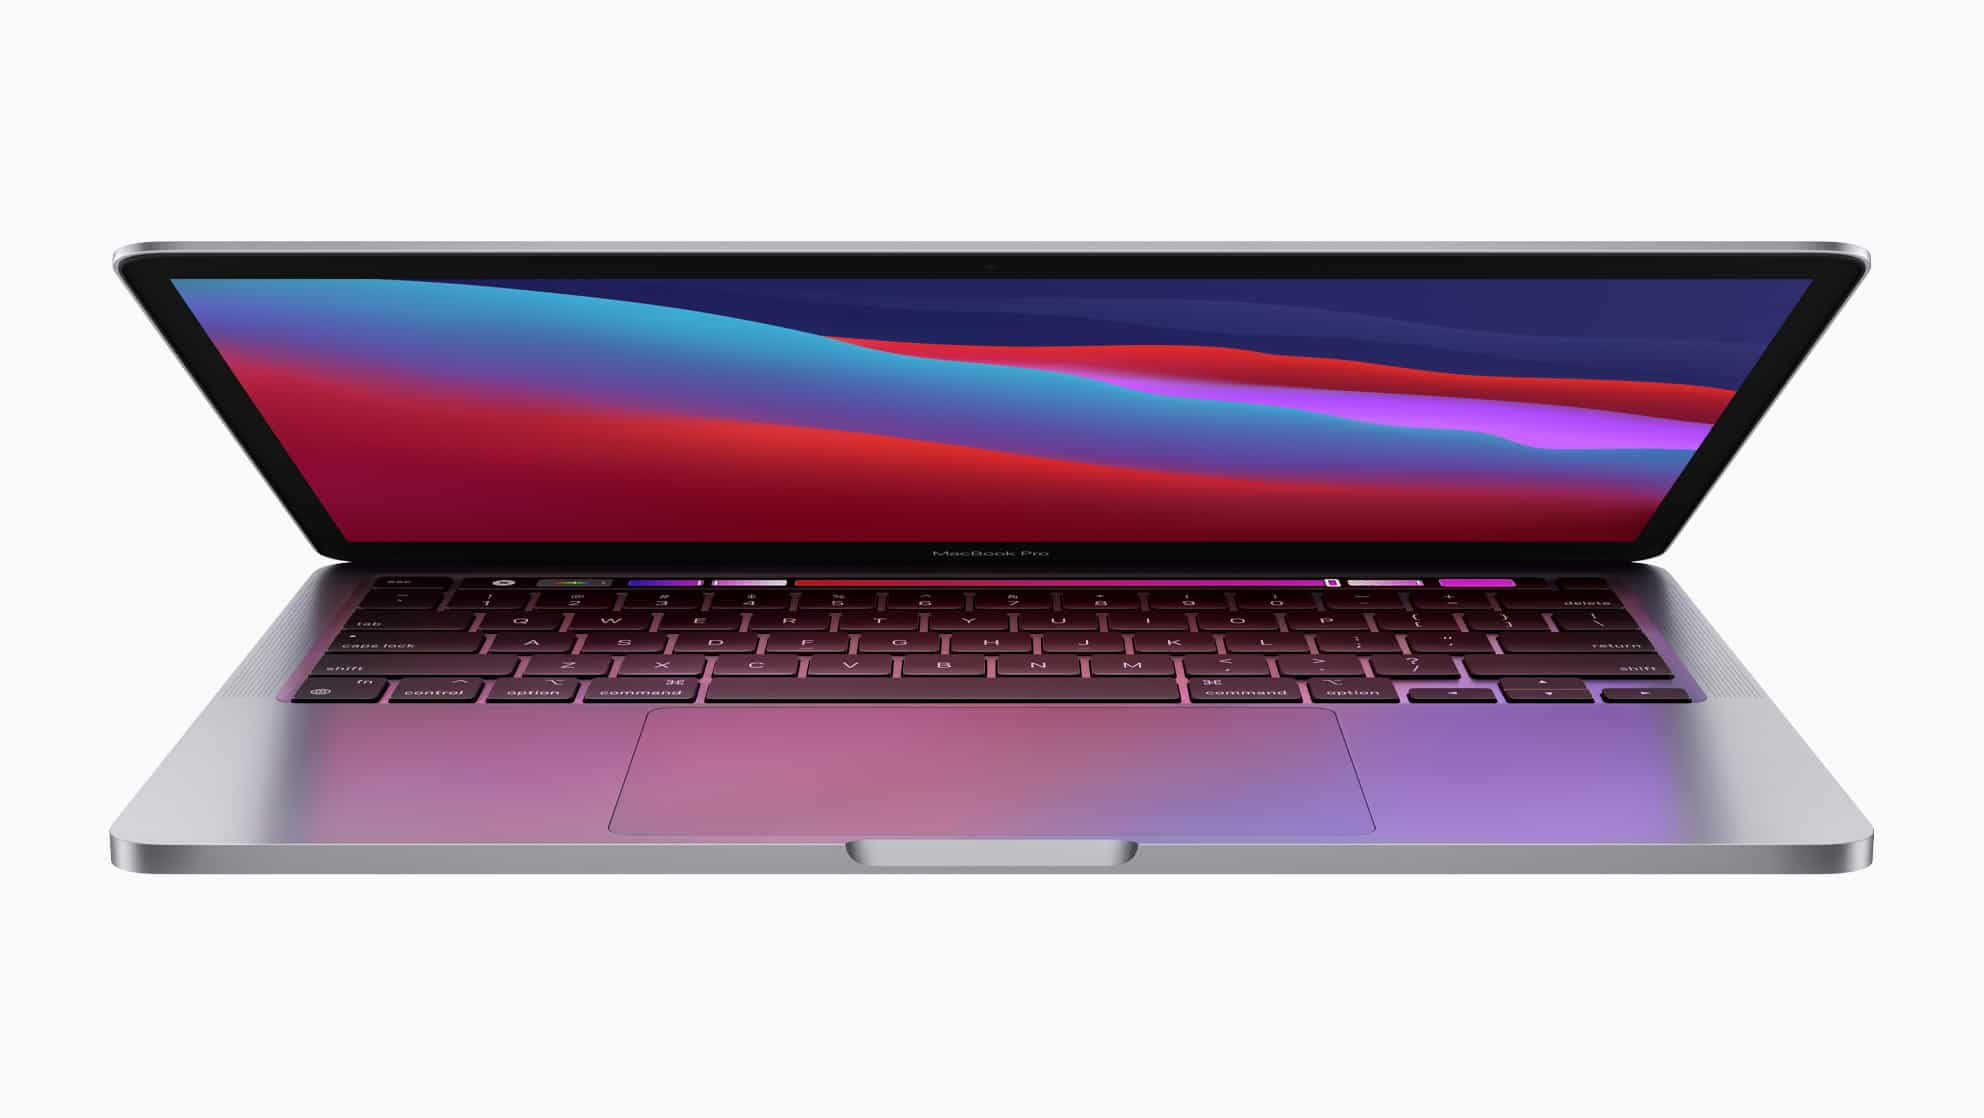 Novo MacBook Pro de 13 polegadas com chip Apple M1 de frente com a tampa abrindo